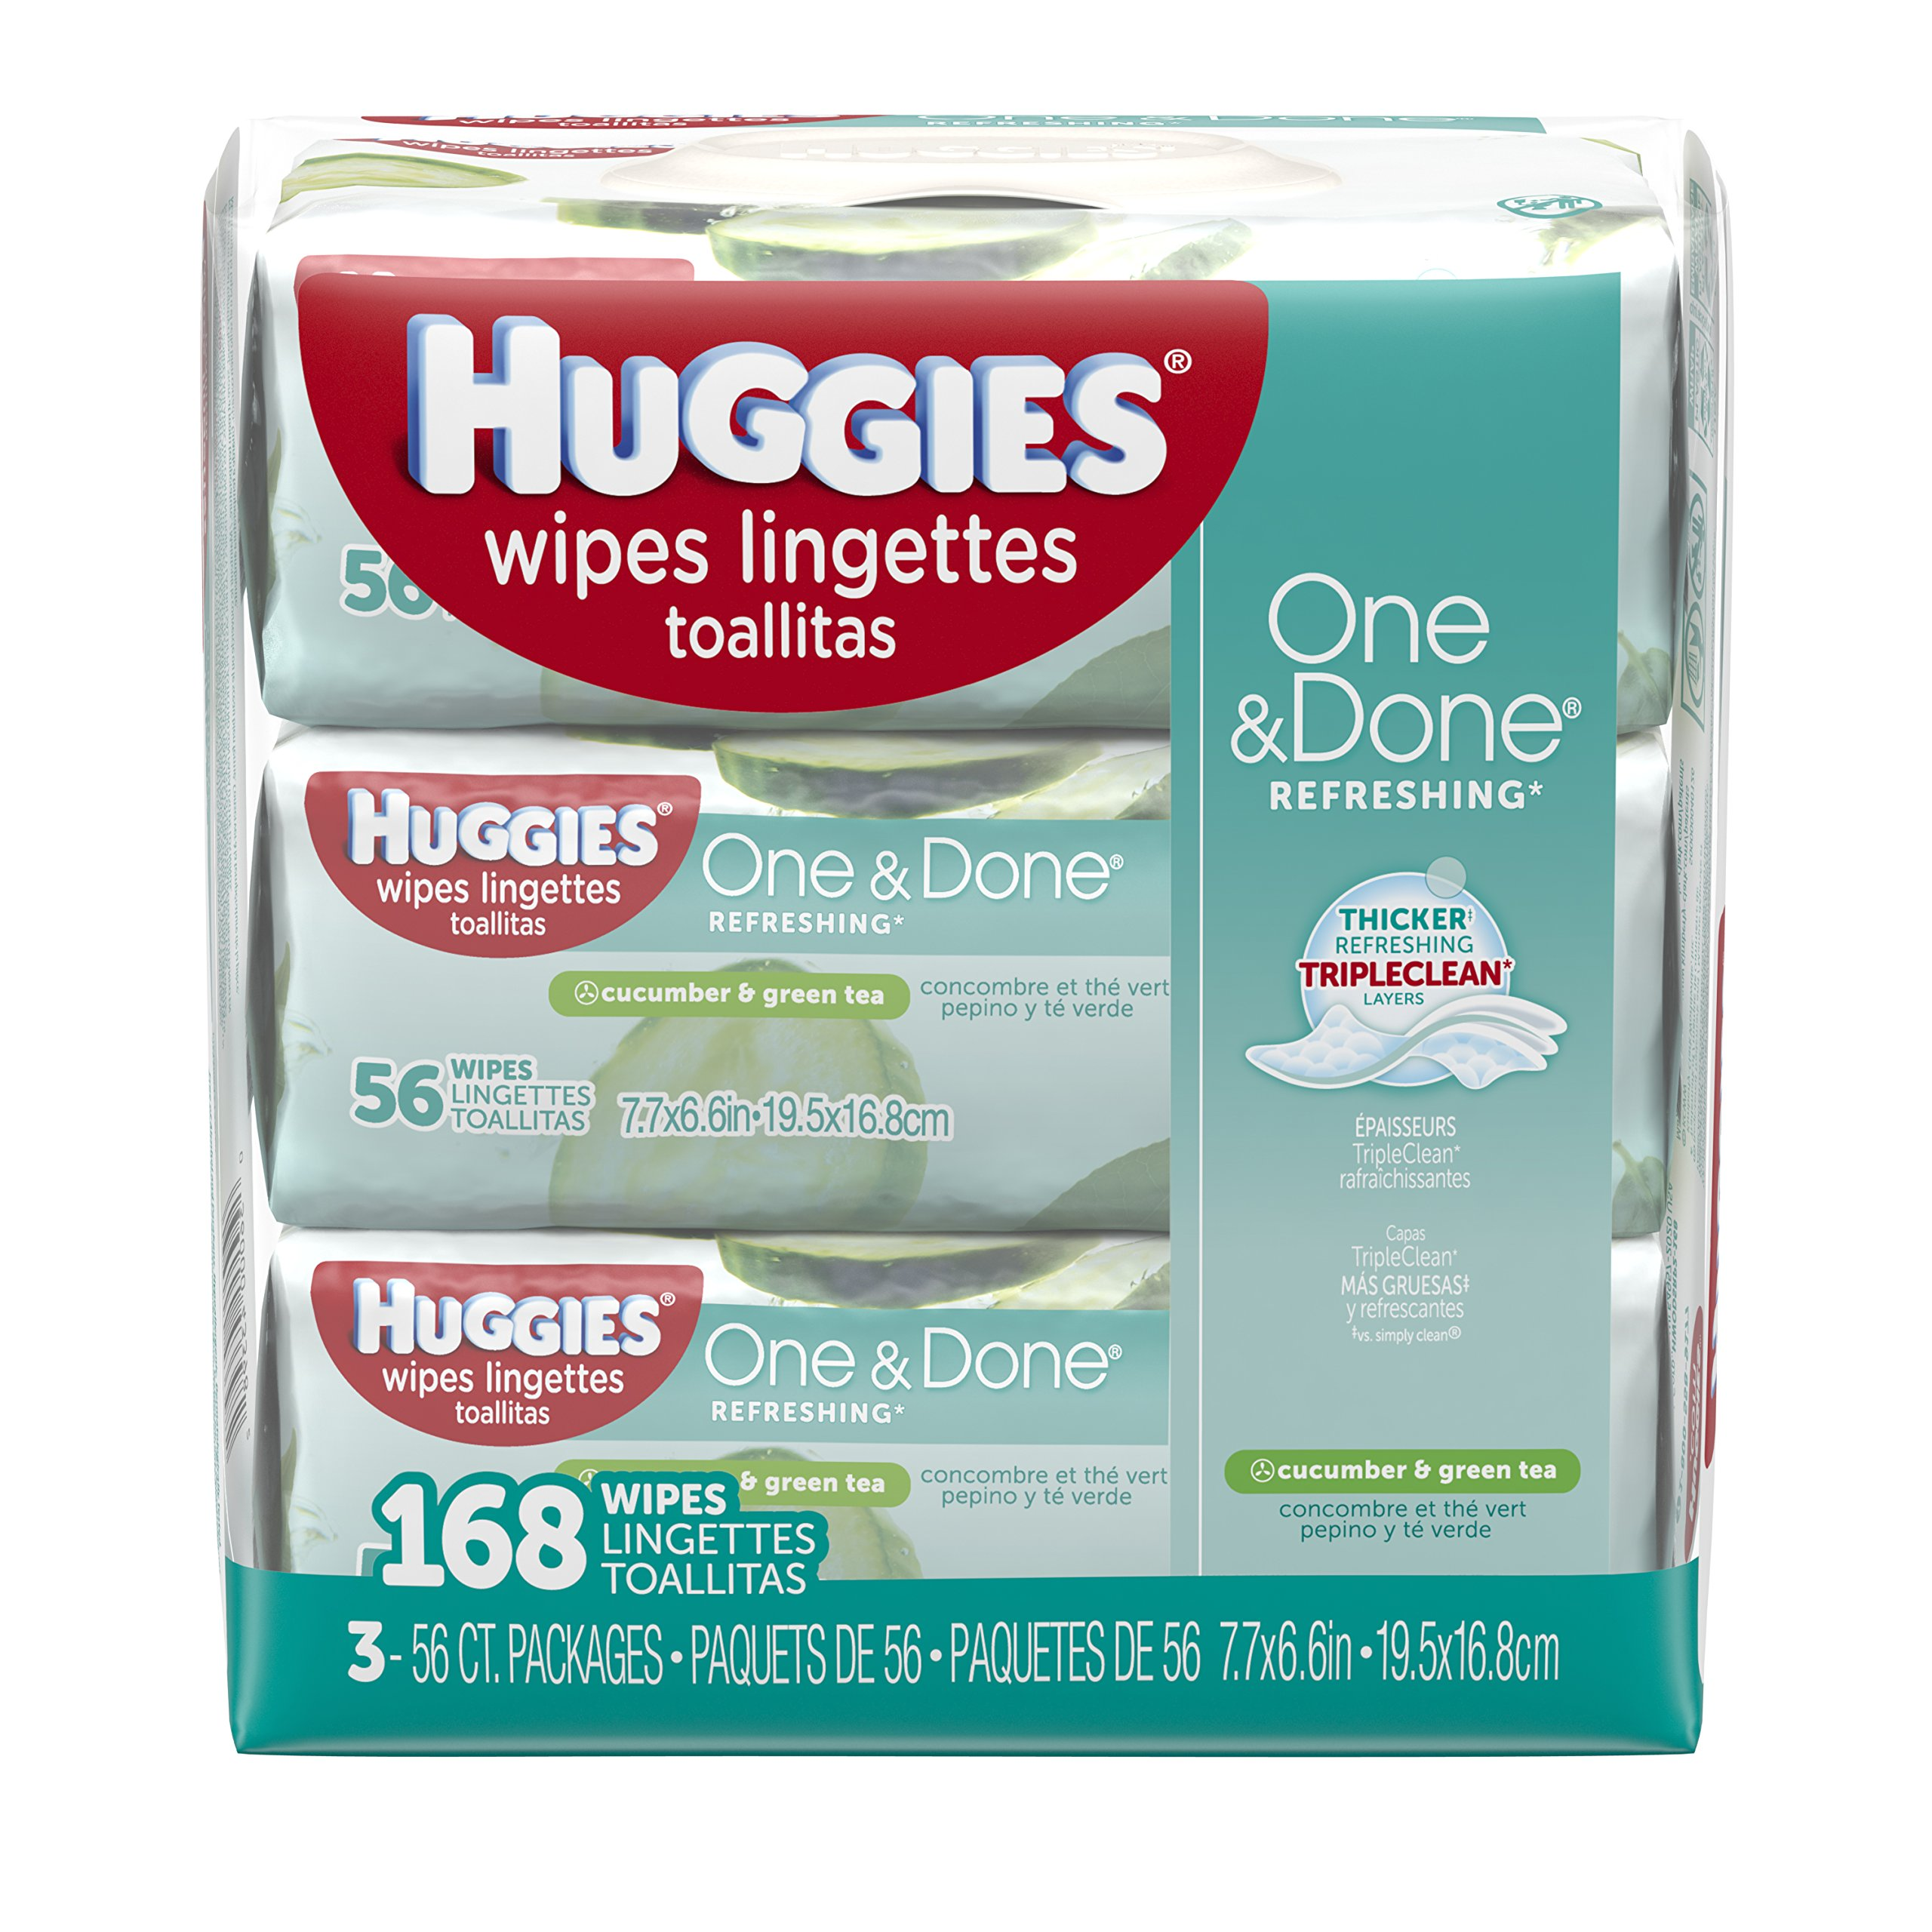 Huggies One & Done Baby Wipes, Cucumber & Green Tea (168 count) by Huggies One (Image #1)